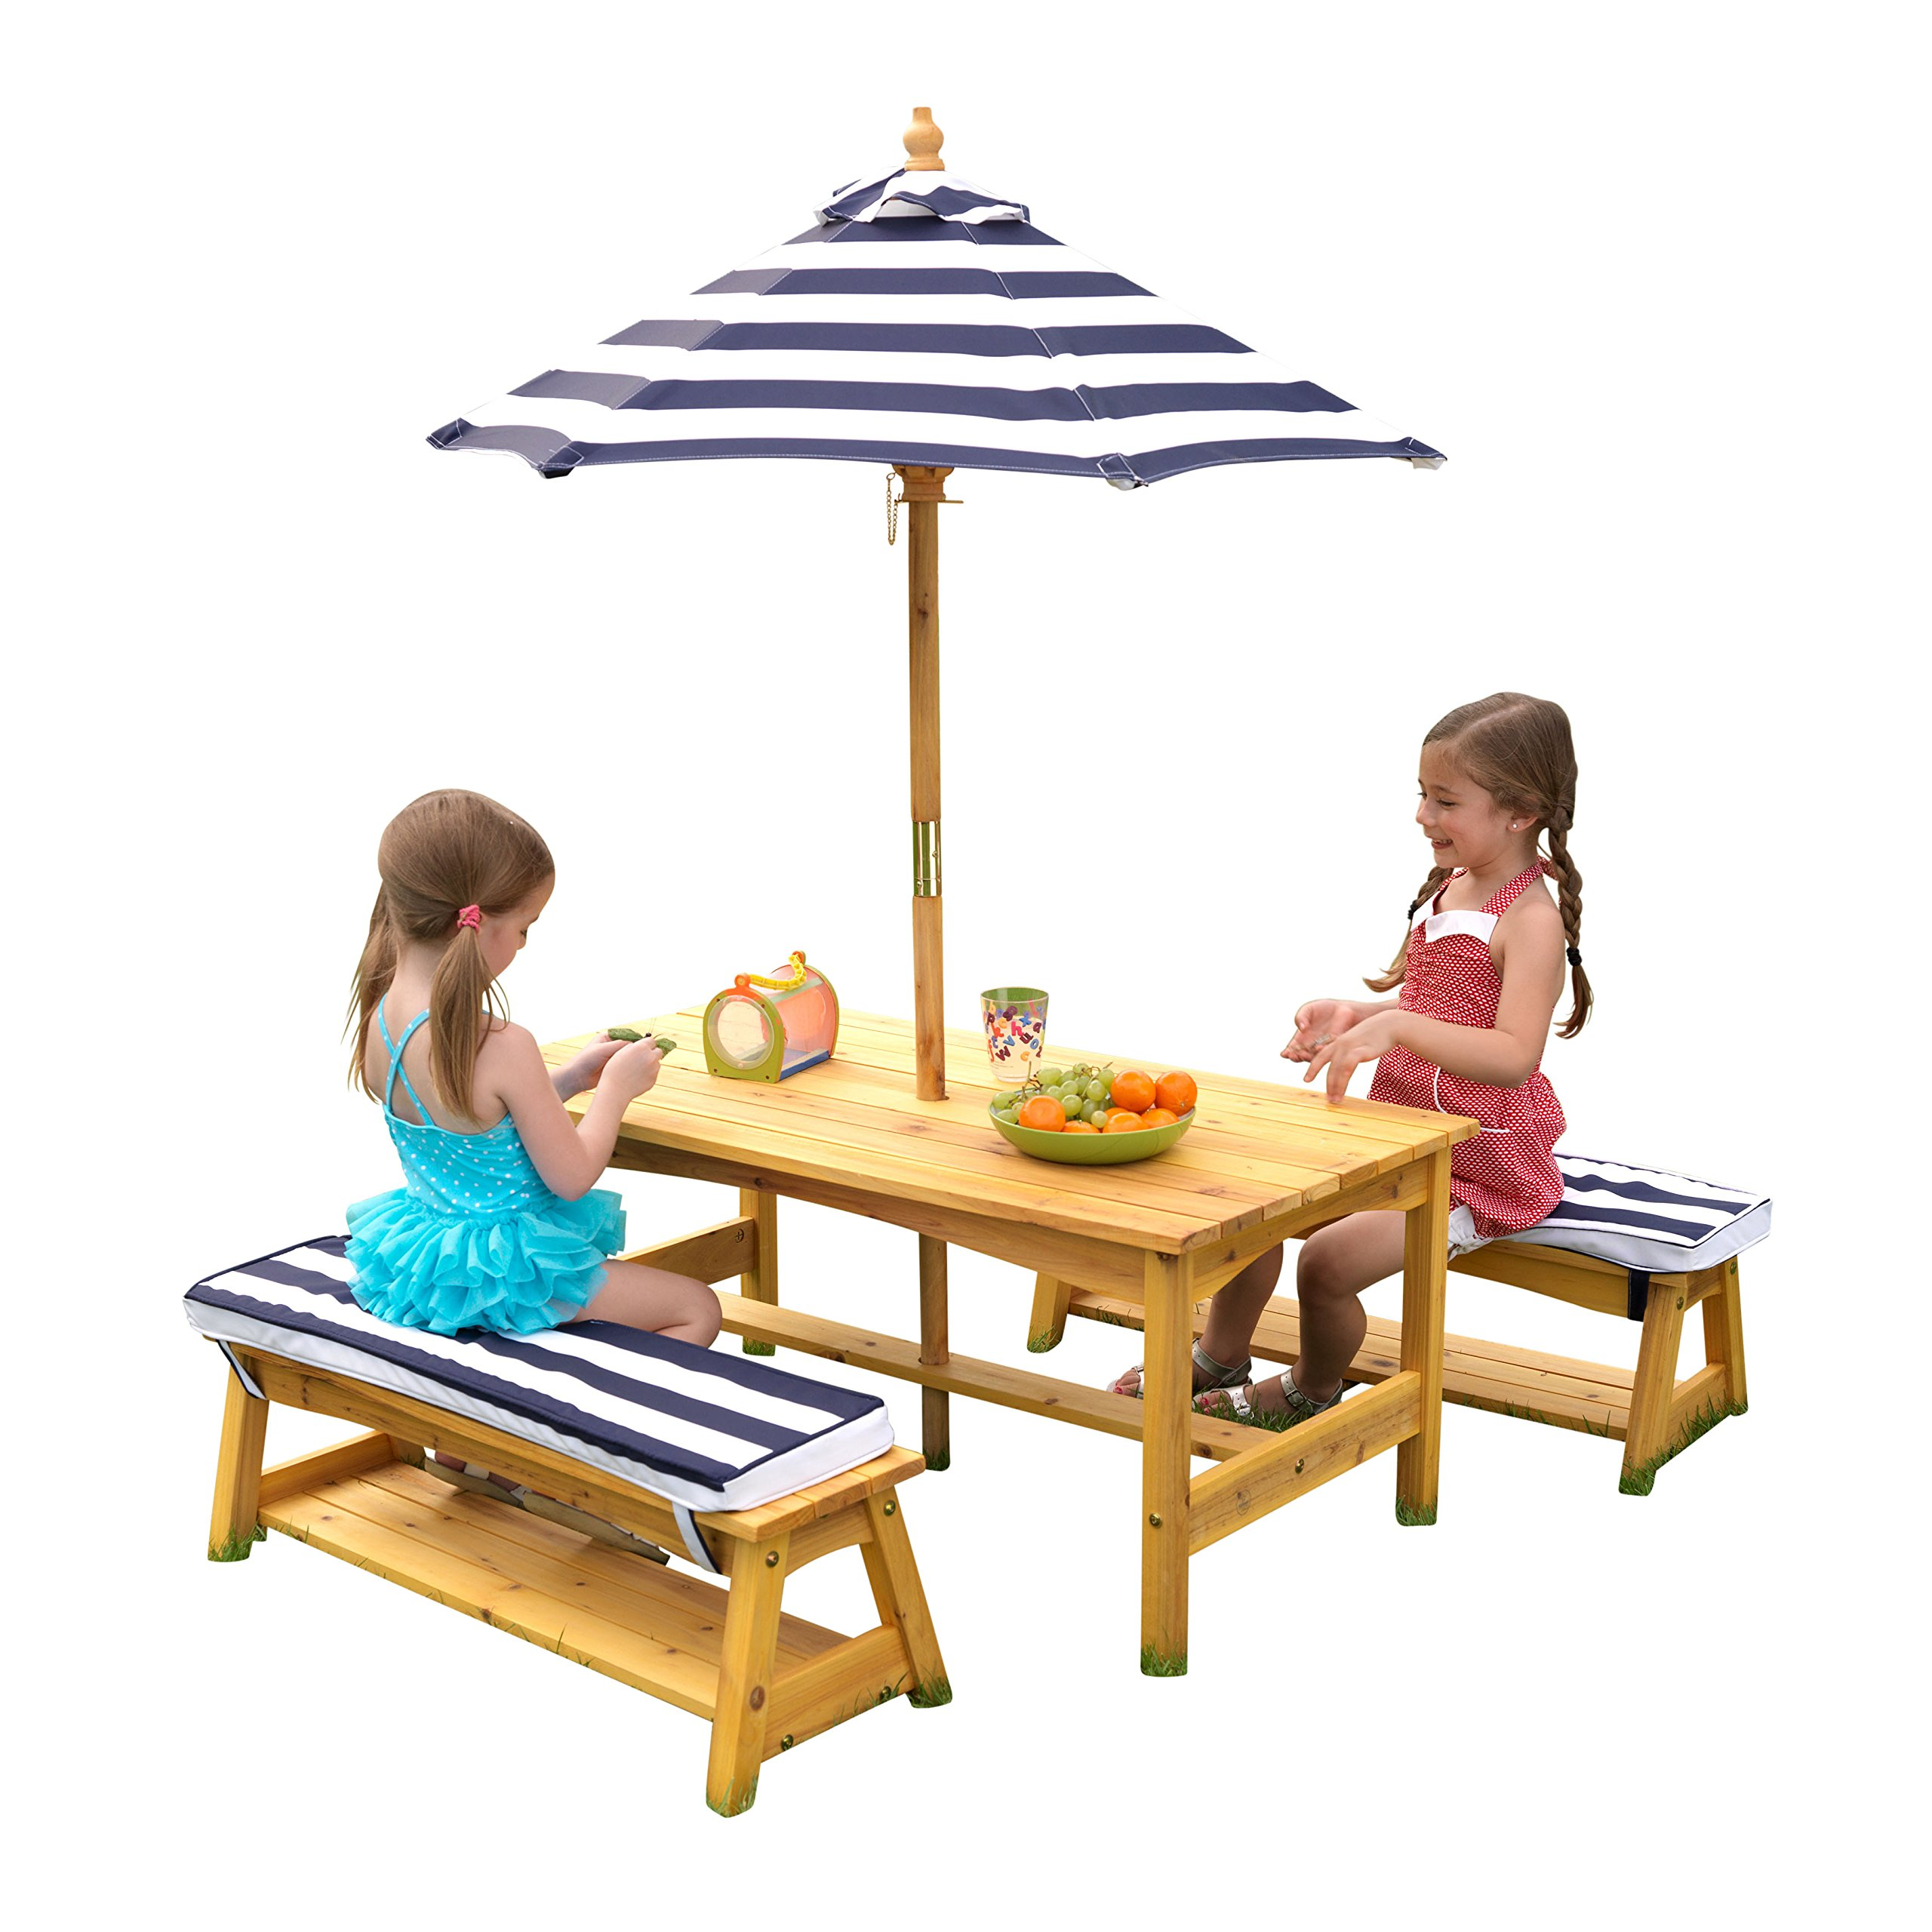 KidKraft Outdoor table and Chair Set with Cushions and Navy Stripes by KidKraft